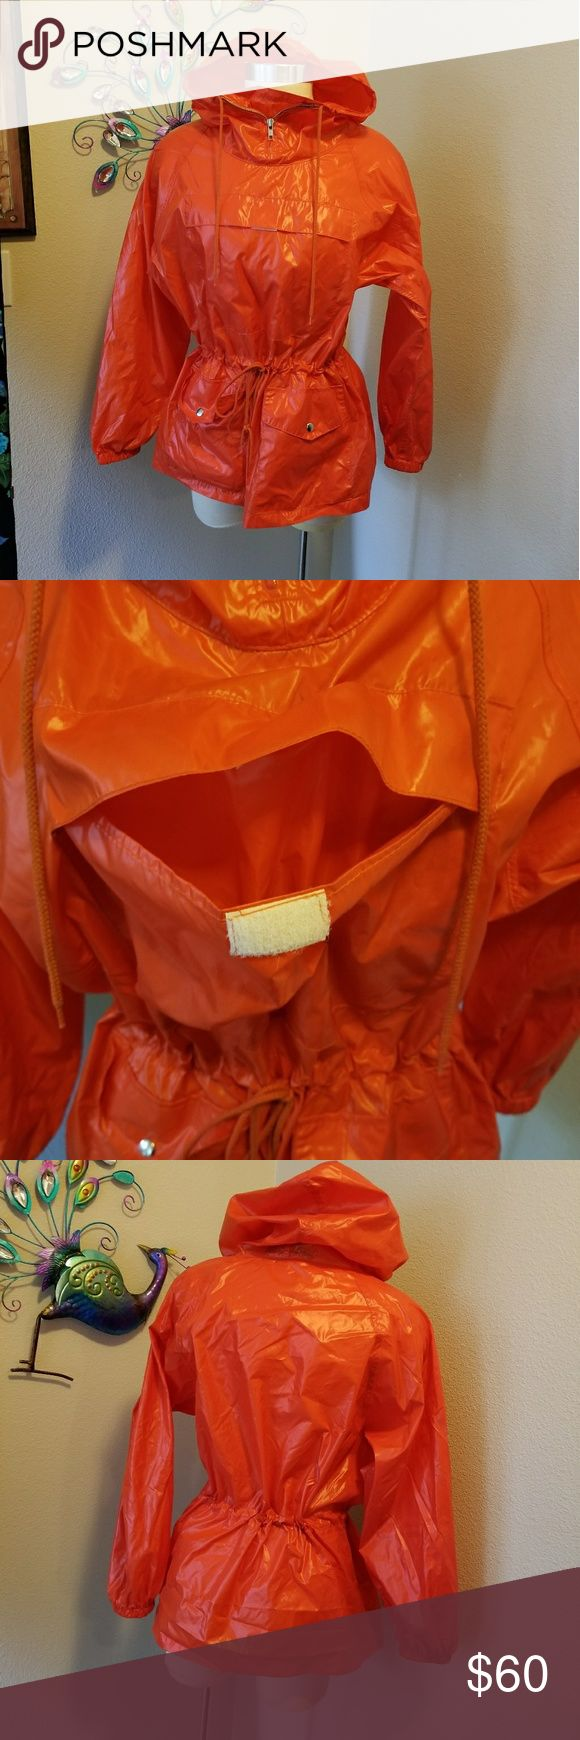 Vintage Ralph Lauren nylon rain parka 1960's Awesome vintage authentic 1960's Ralph Lauren orange rain parka. 100% nylon excellent condition, drawstring for sizing. Could fort small to medium. Chest Velcro pocket, maybe for beach rock hunting? Very cool. Rare find. Vintage Jackets & Coats Utility Jackets